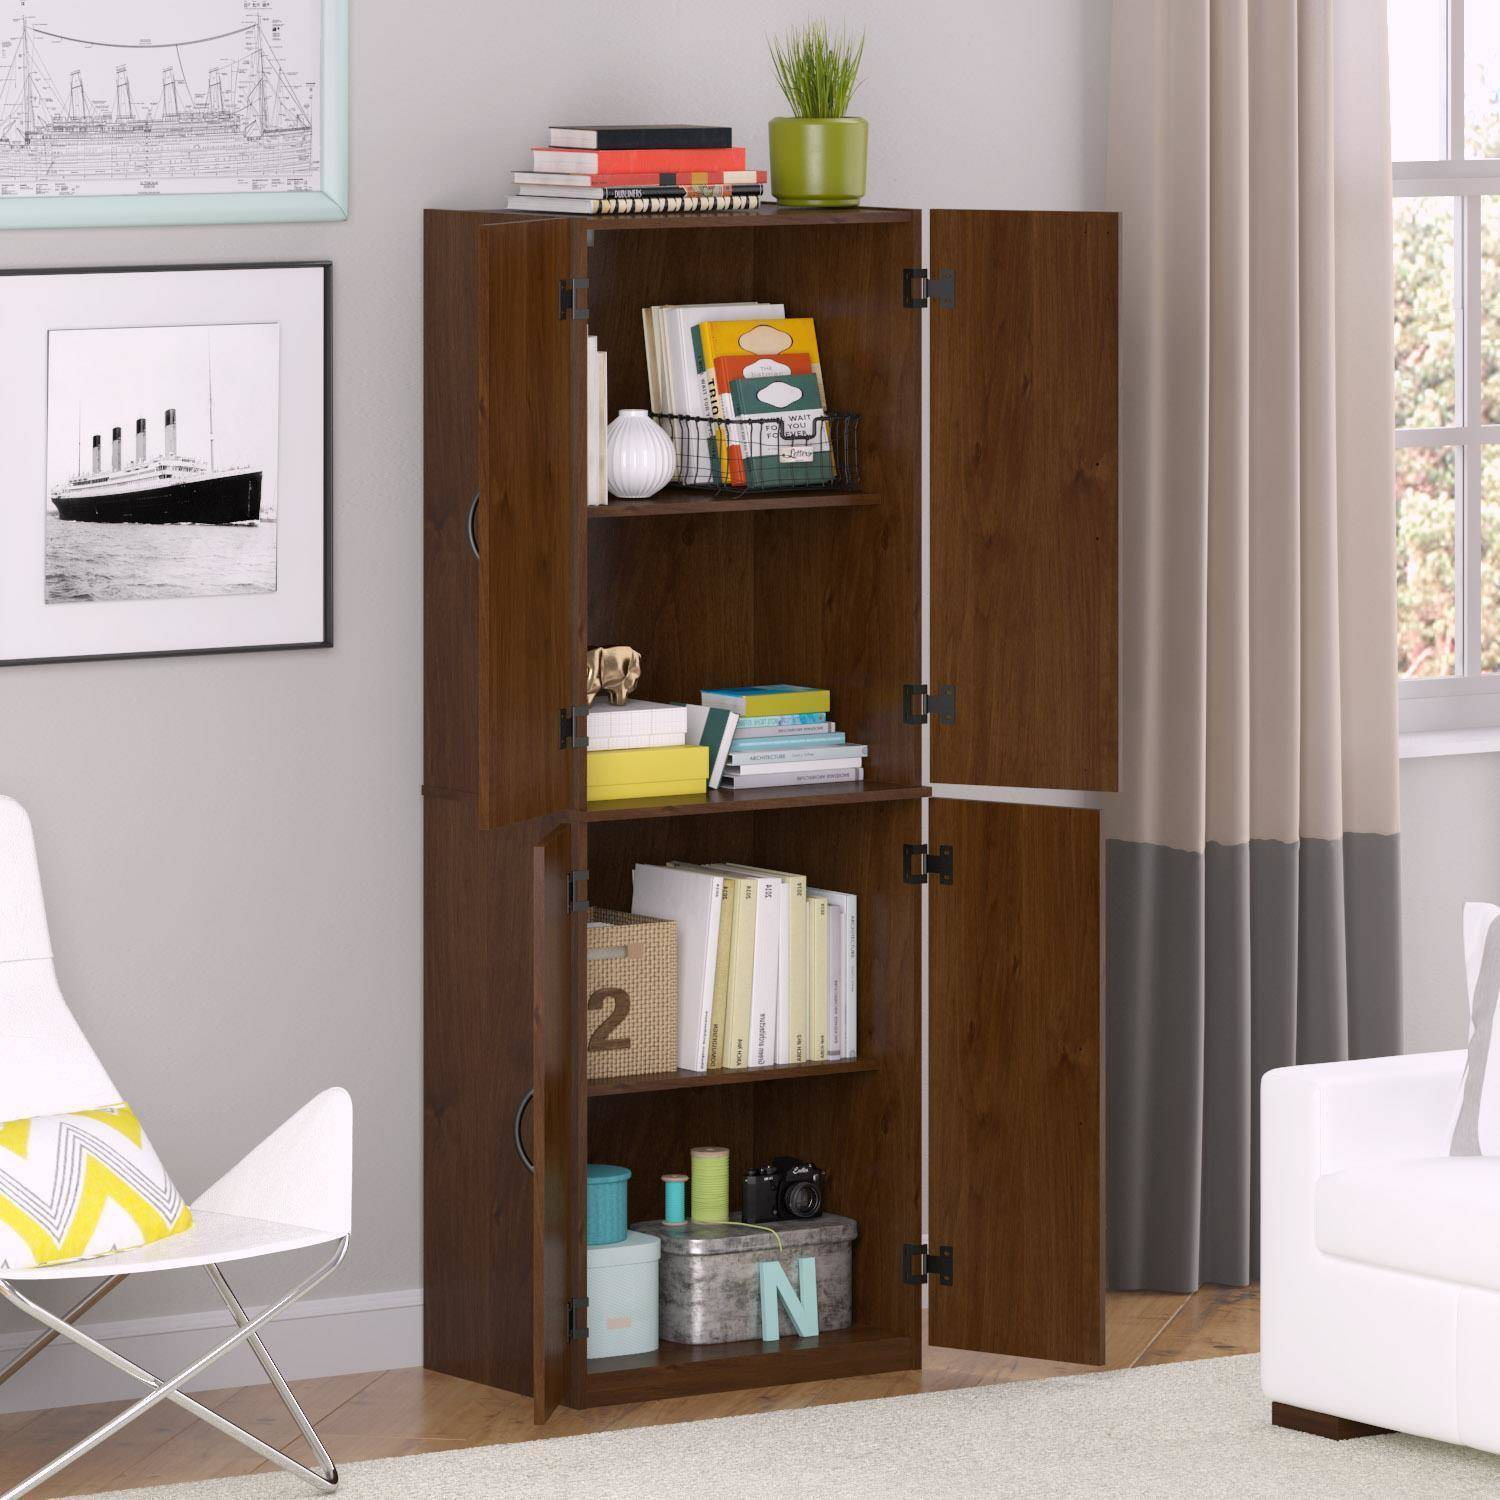 Pantry Shelves Details About Kitchen Pantry Cabinet Storage Wood Tall Organizer Adjustable Shelves Furniture